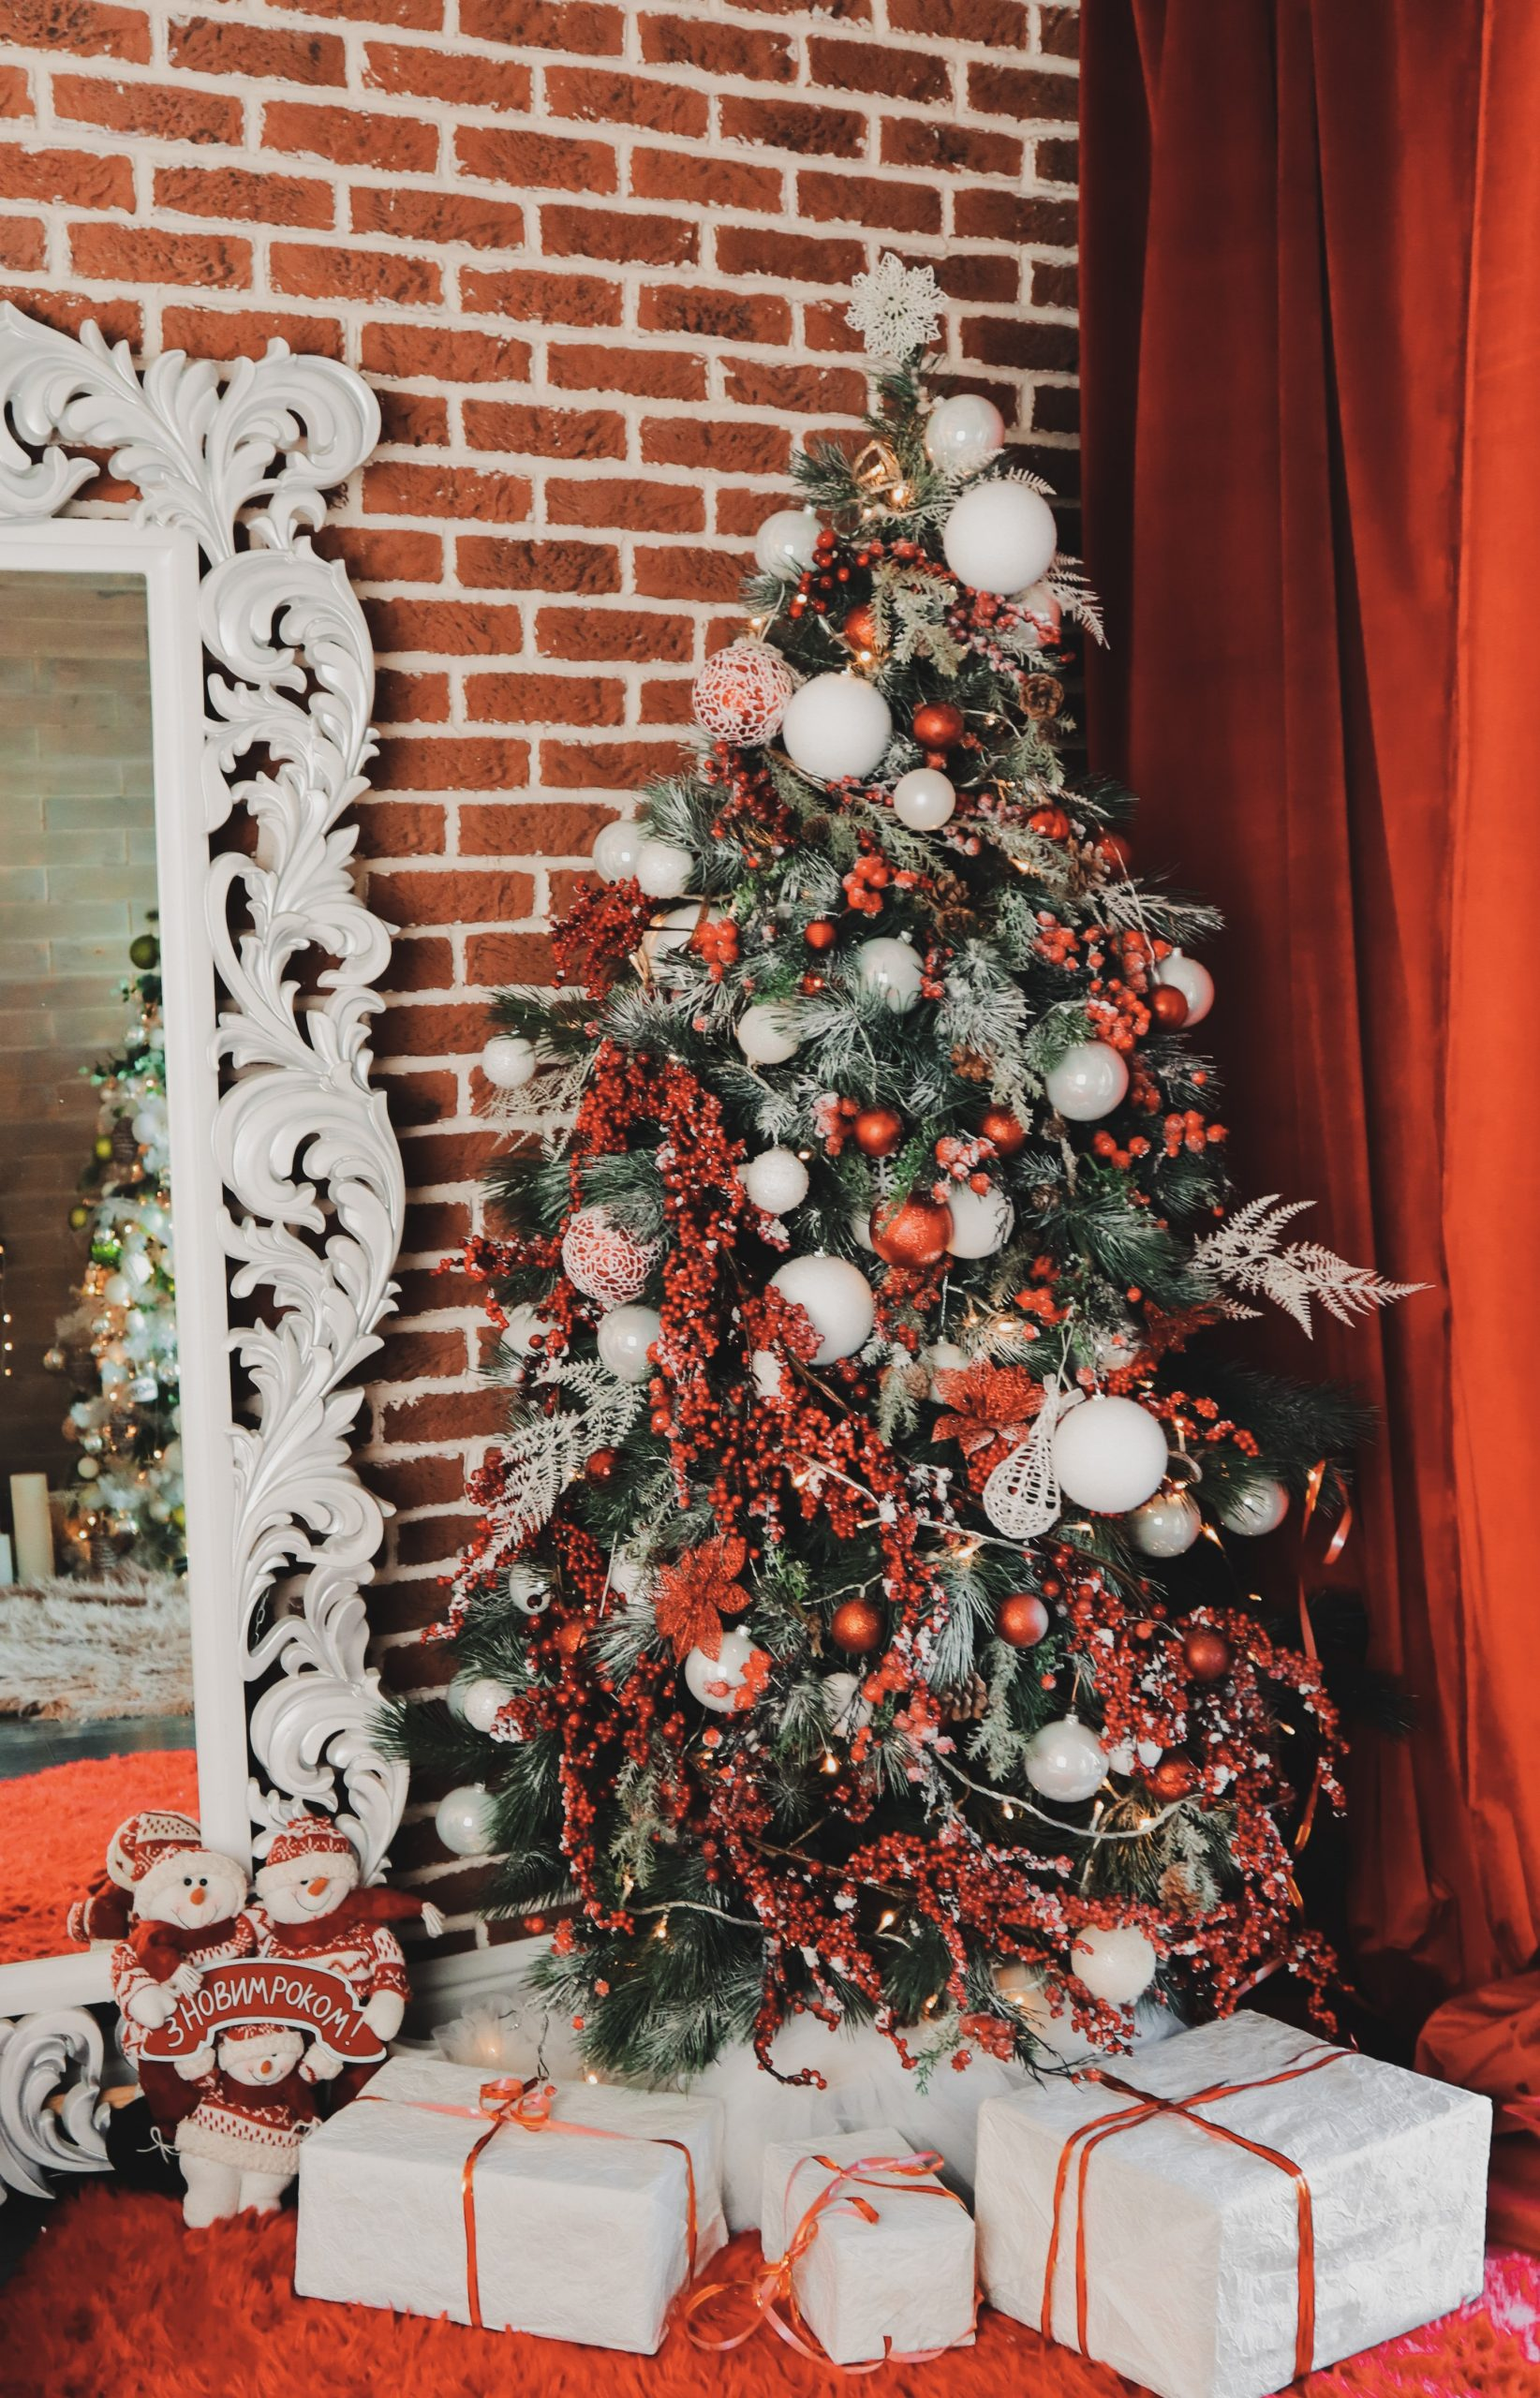 A red and white themed Christmas tree décor featuring a wide array of decorative elements.